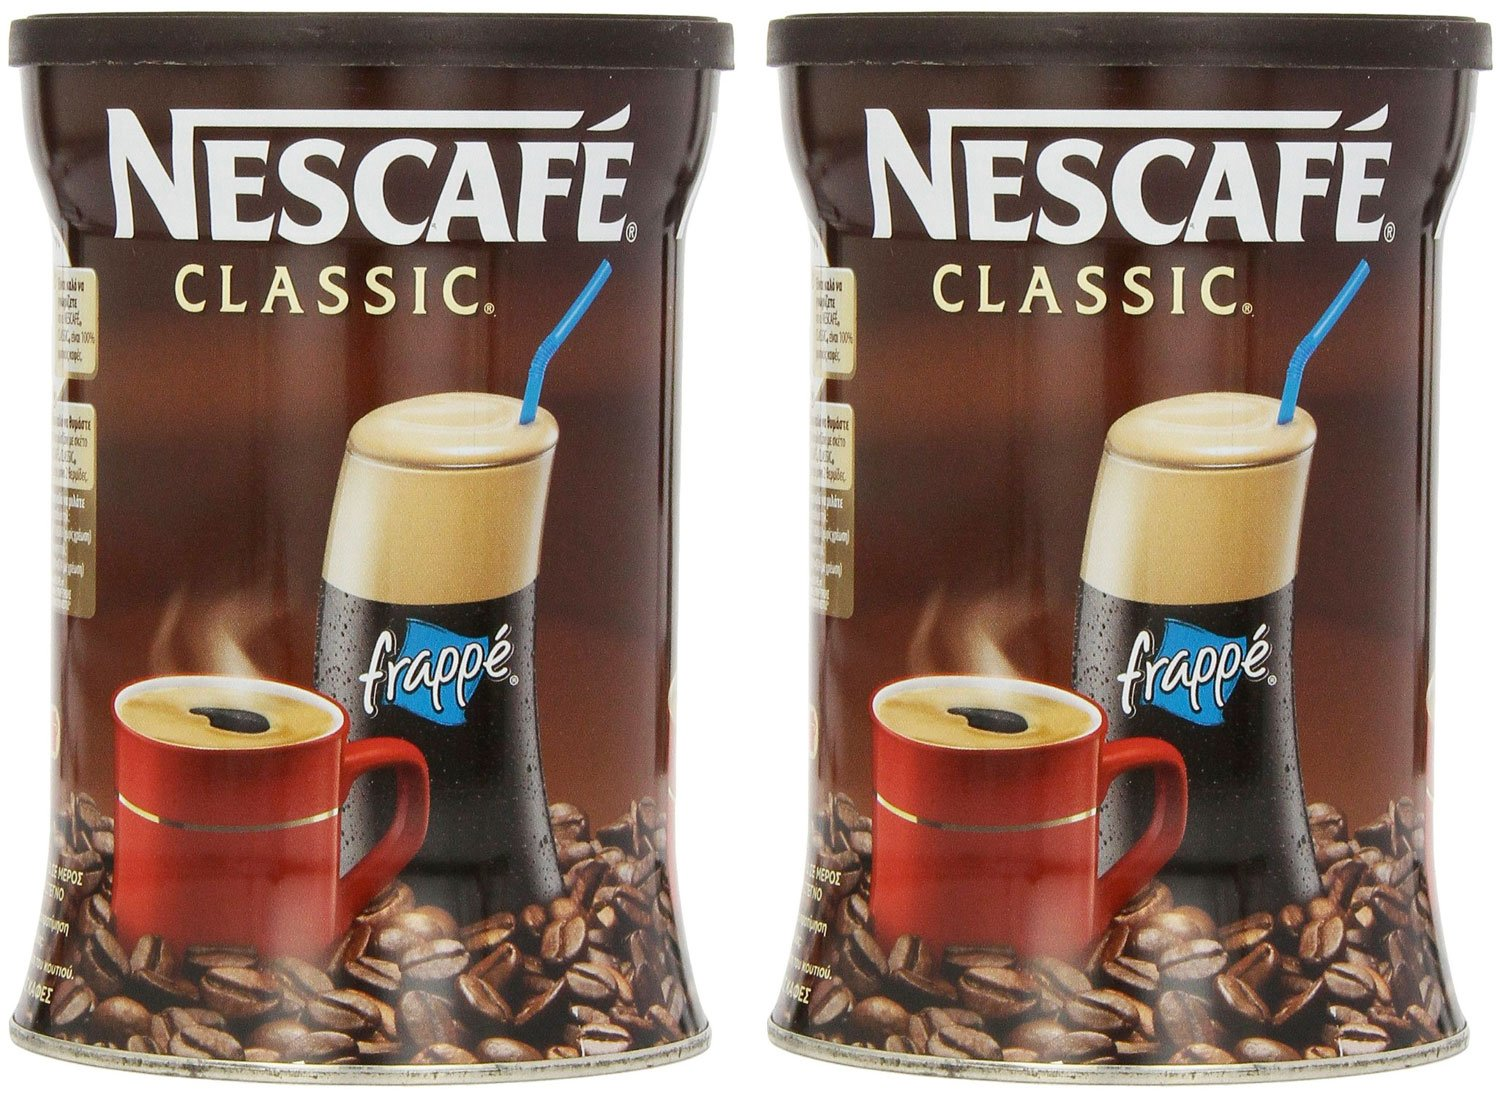 Nescafe Classic Instant Greek Coffee, 7.08 Ounce (Pack of 2) by Nescafé